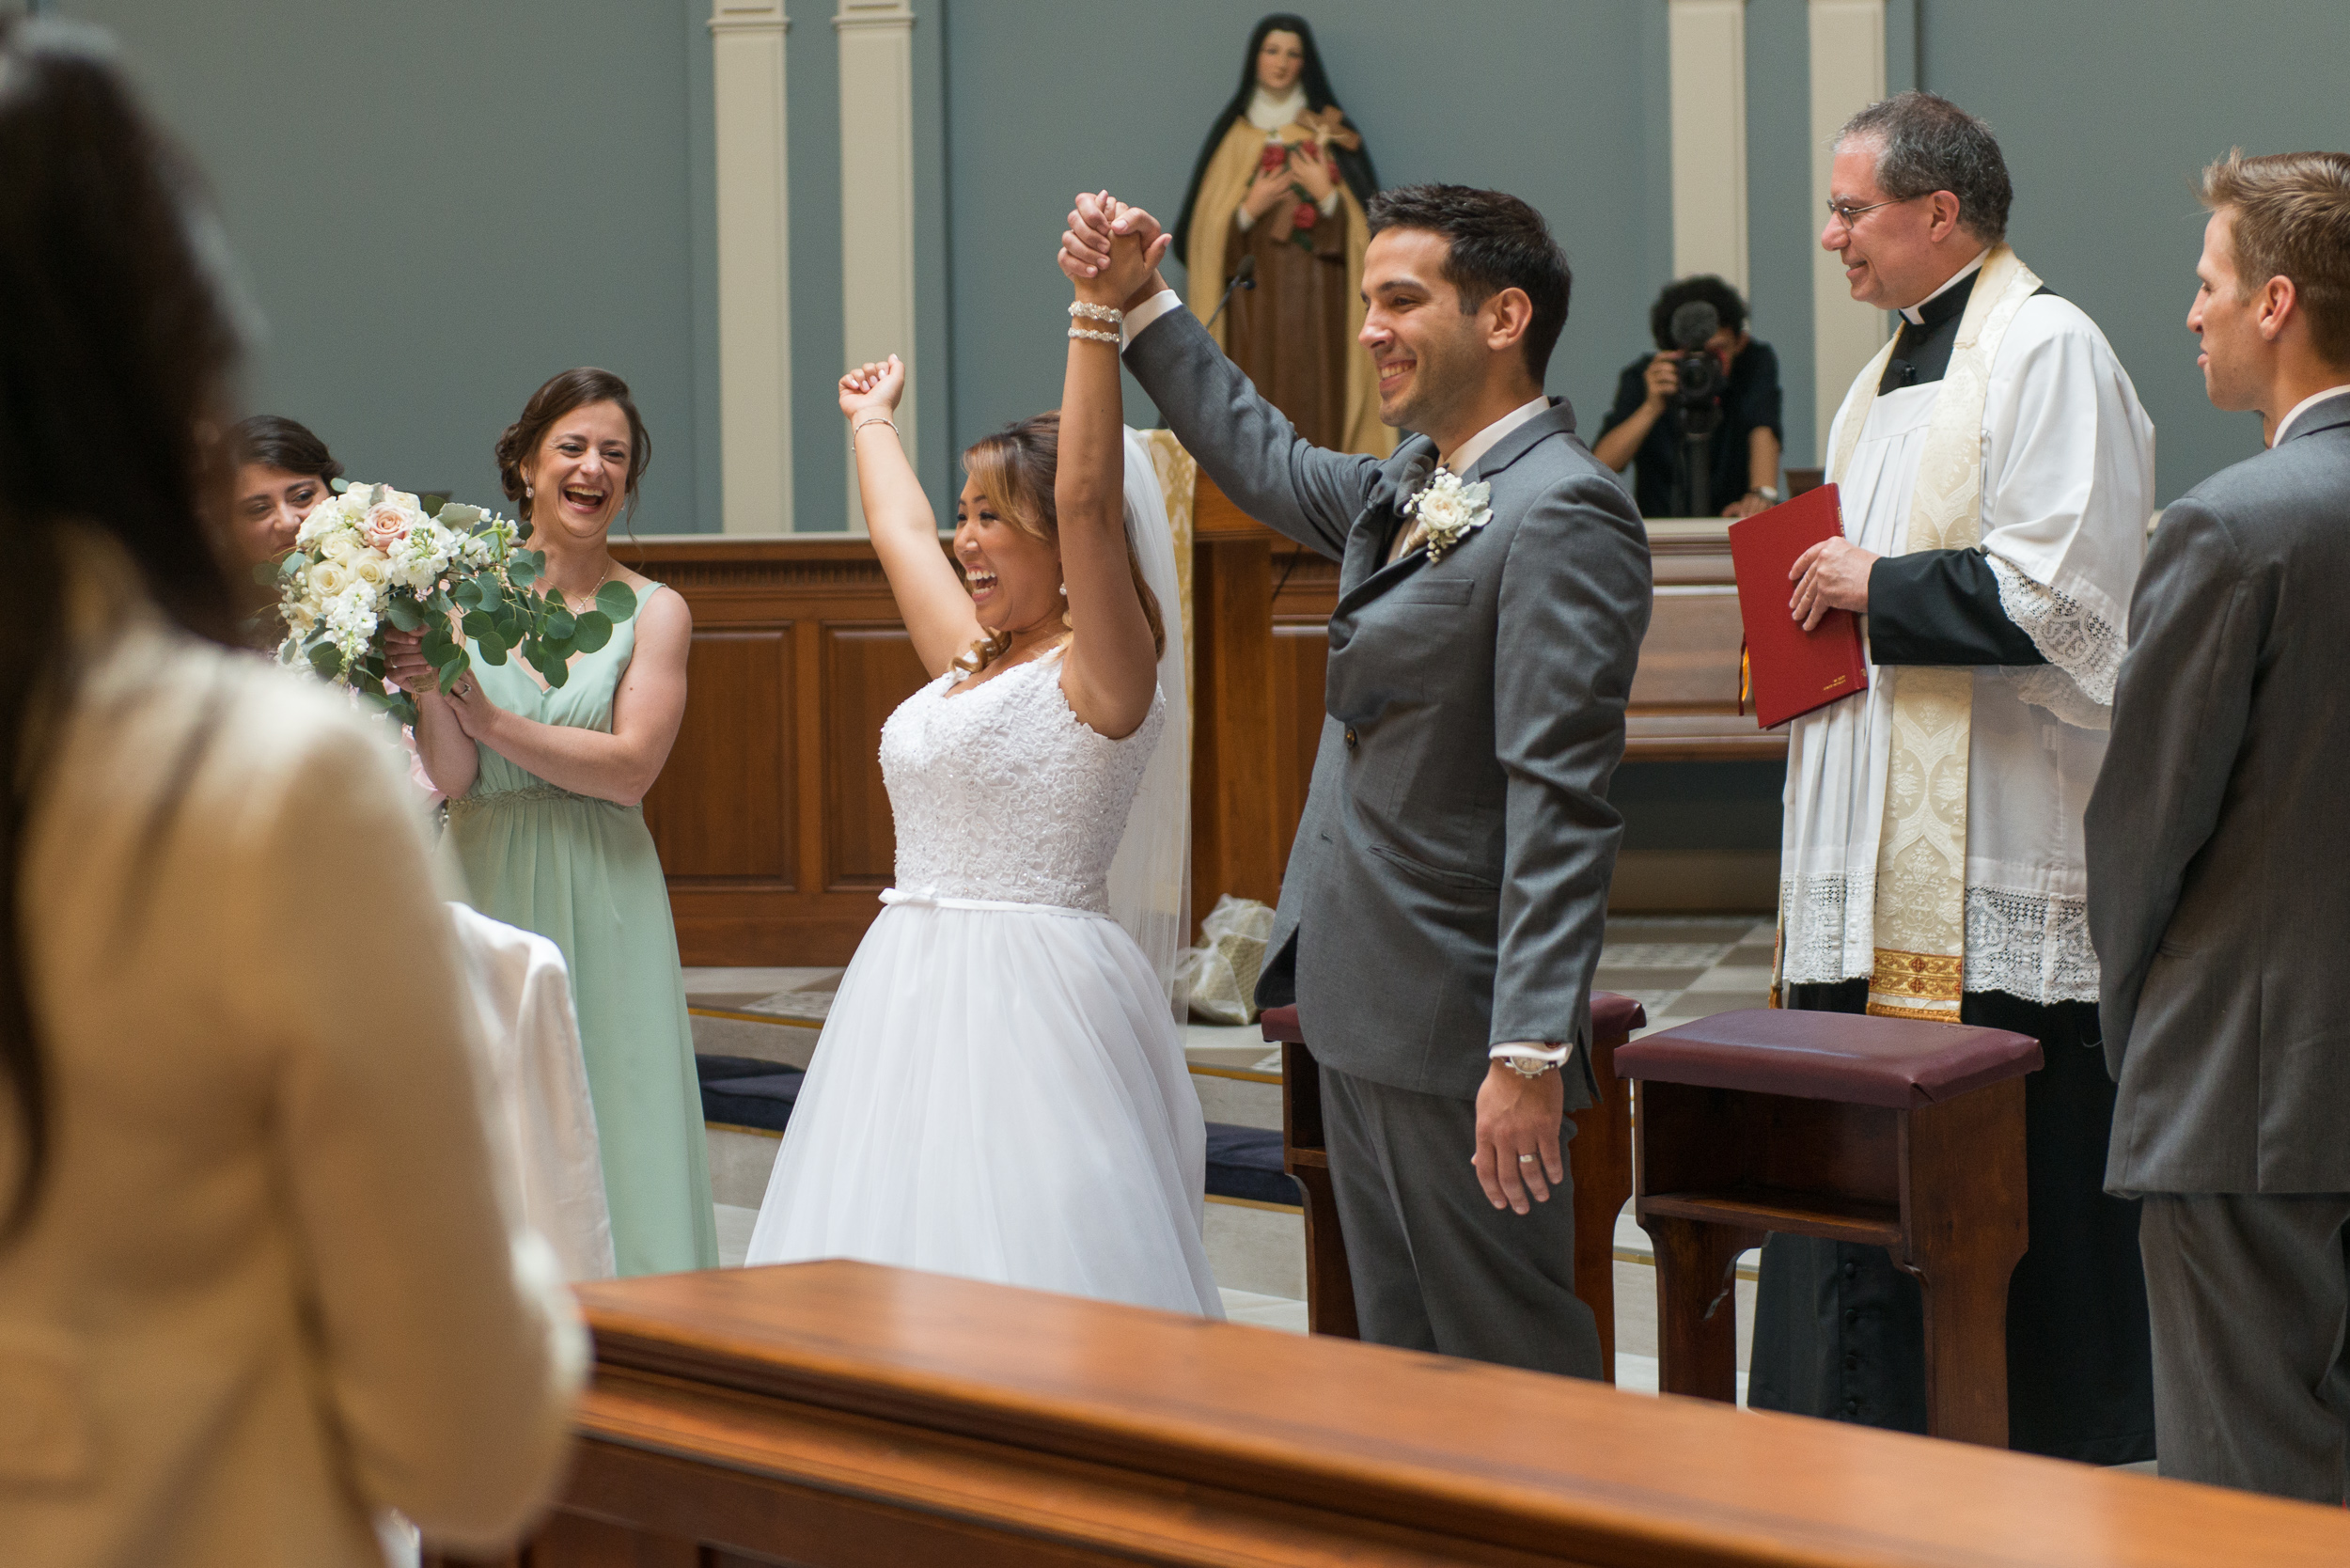 A bride and groom celebrate being announced husband and wife during their wedding ceremony at St. Veronica Catholic Church in Chantilly, Virginia